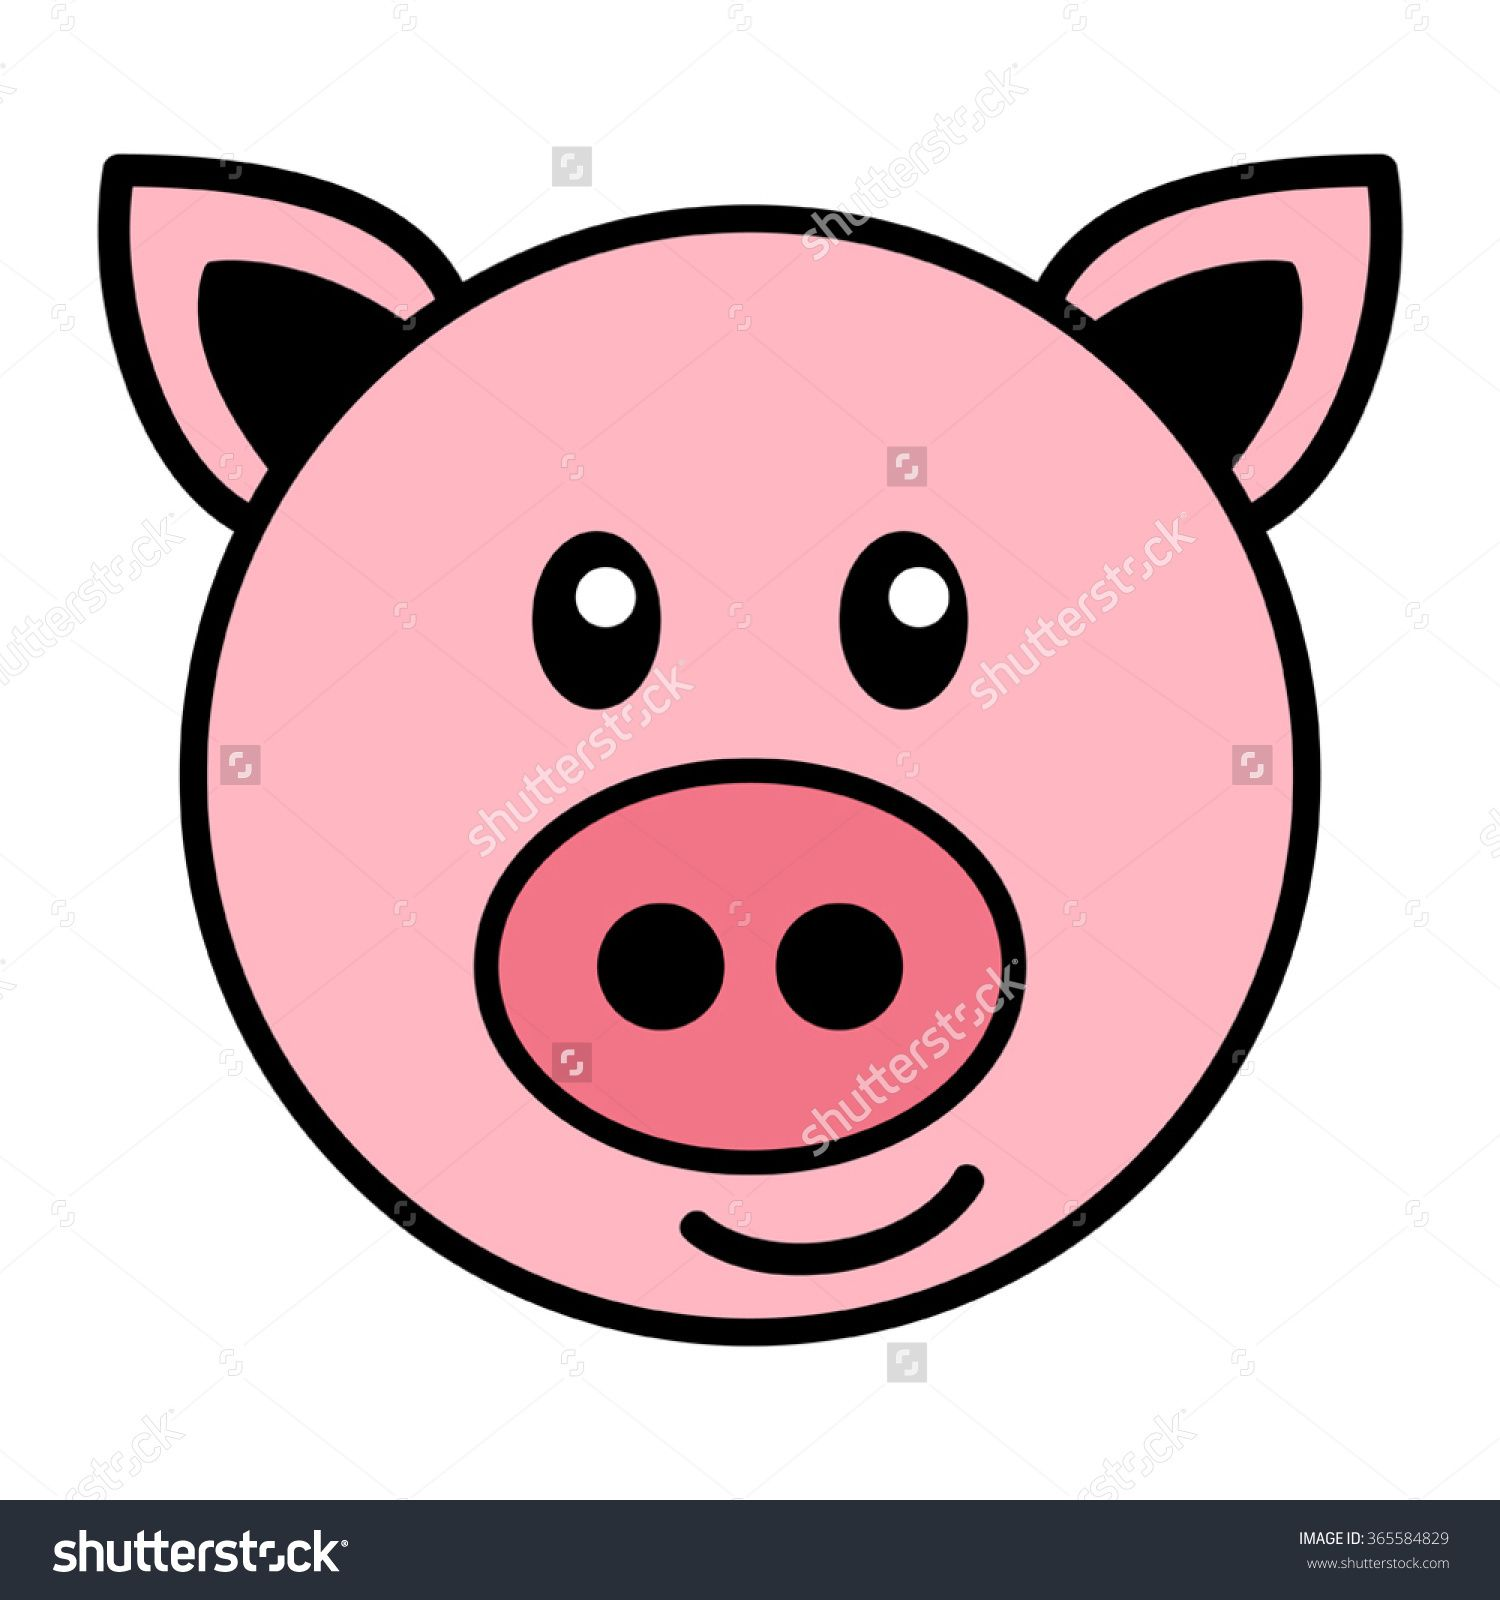 Image result for simple cartoon pig face.